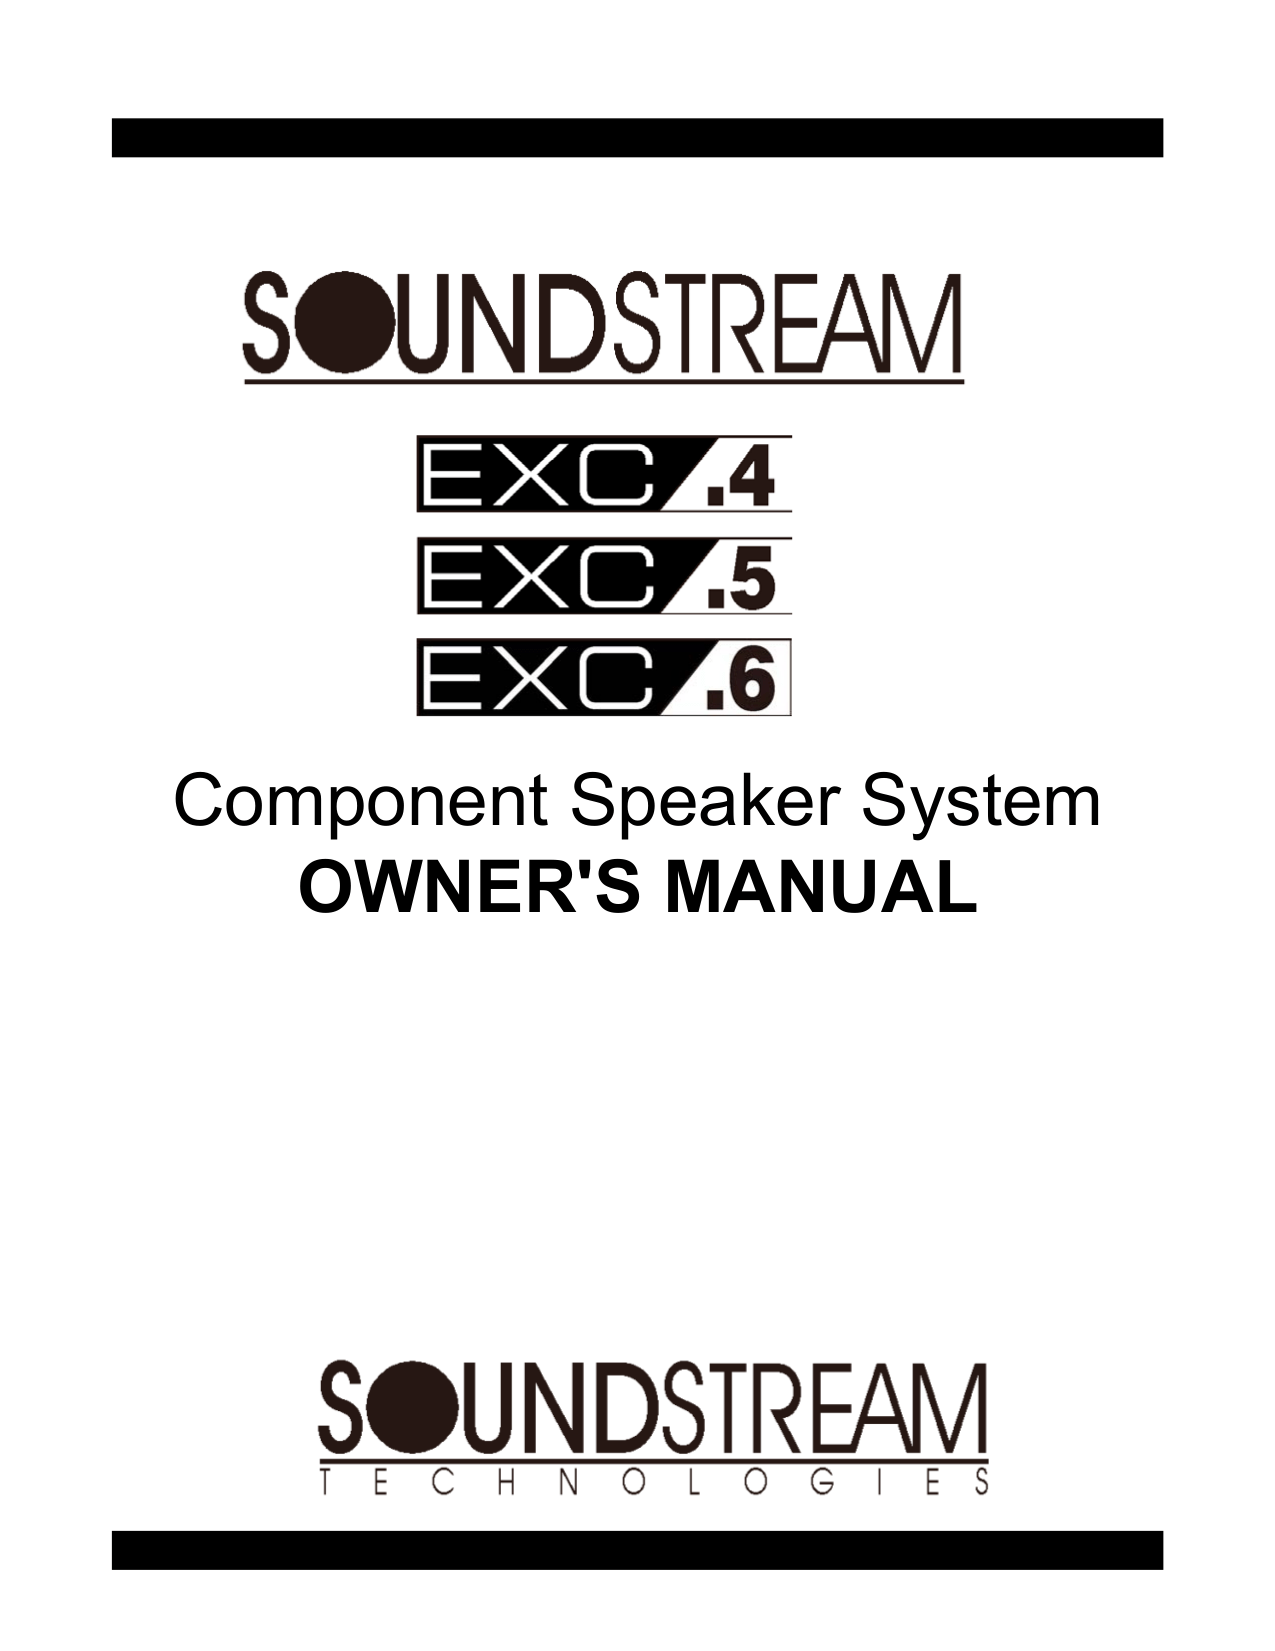 Download free pdf for Soundstream SPL-60 Speaker manual